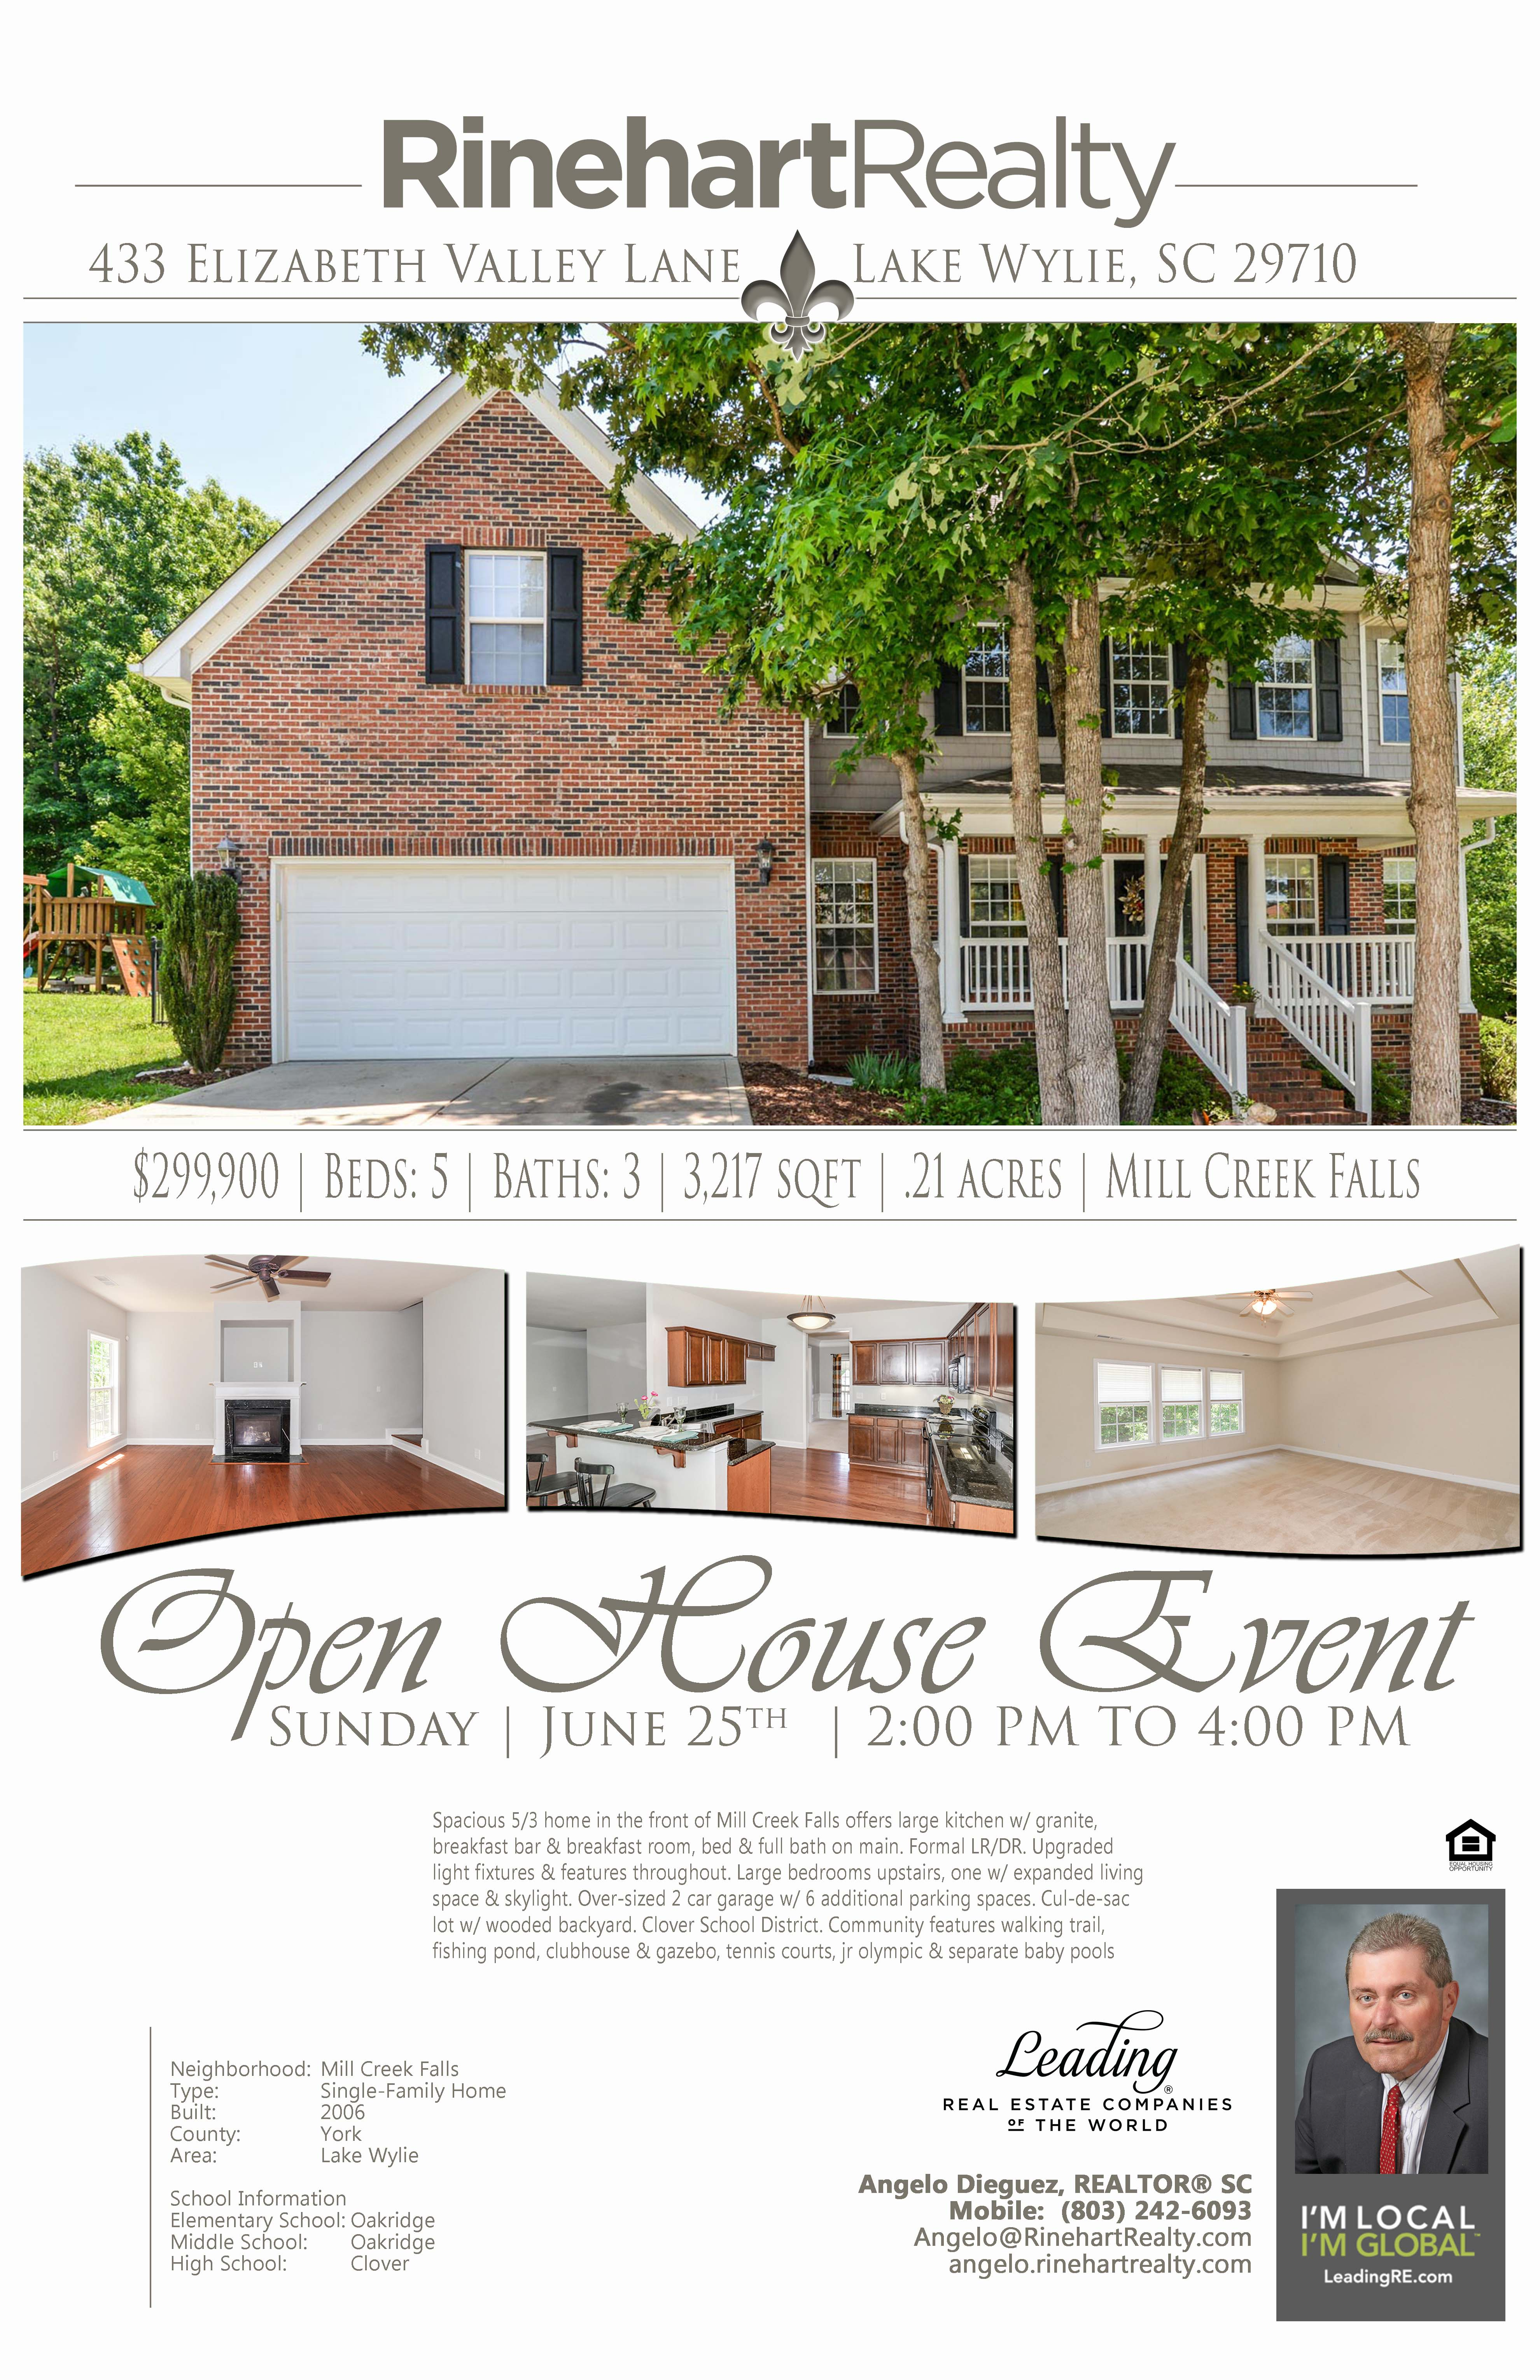 OPEN HOUSE: Sunday, June 25th | 2:00 pm to 4:00 pm   433 Elizabeth Valley Lane, Lake Wylie, SC 29710 PRICE: $299,900 Beds: 5 | Baths: 3 | 3,217 sqft | .21 acres  Spacious 5/3 home in the front of Mill Creek Falls offers large kitchen w/ granite, breakfast bar & breakfast room, bed & full bath on main. Formal LR/DR. Upgraded light fixtures & features throughout. Large bedrooms upstairs, one w/ expanded living space & skylight. Over-sized 2 car garage w/ 6 additional parking spaces. Cul-de-sac lot w/ wooded backyard. Clover School District. Community features walking trail, fishing pond, clubhouse & gazebo, tennis courts, jr olympic & separate baby pools    Hosted by:  Angelo Dieguez, REALTOR® SC Mobile: (803) 242-6093 Angelo@RinehartRealty.com angelo.rinehartrealty.com